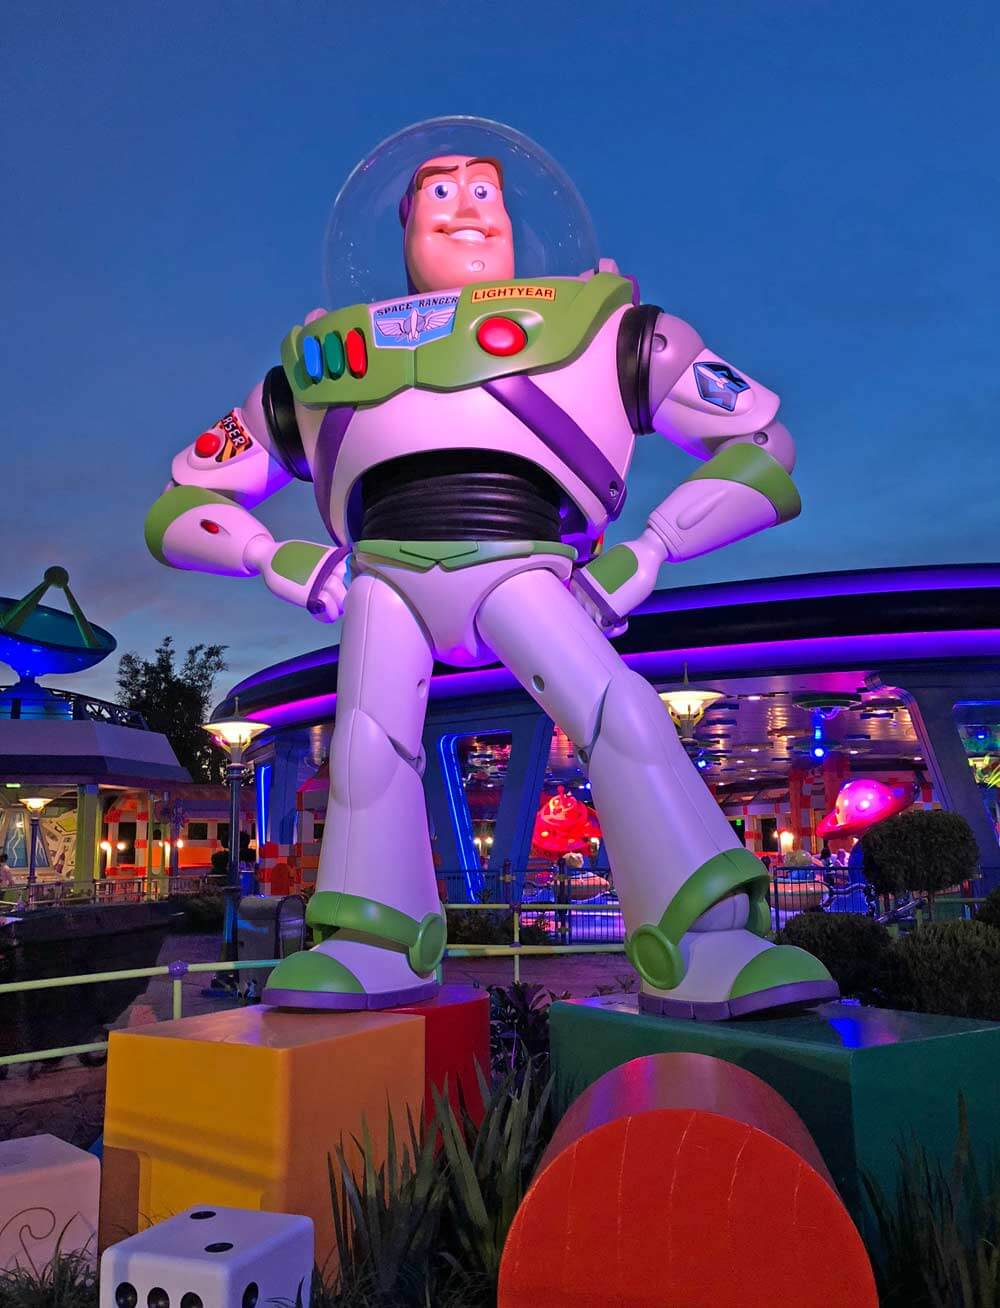 Buzz Lightyear at Toy Story Land at Disney's Hollywood Studios